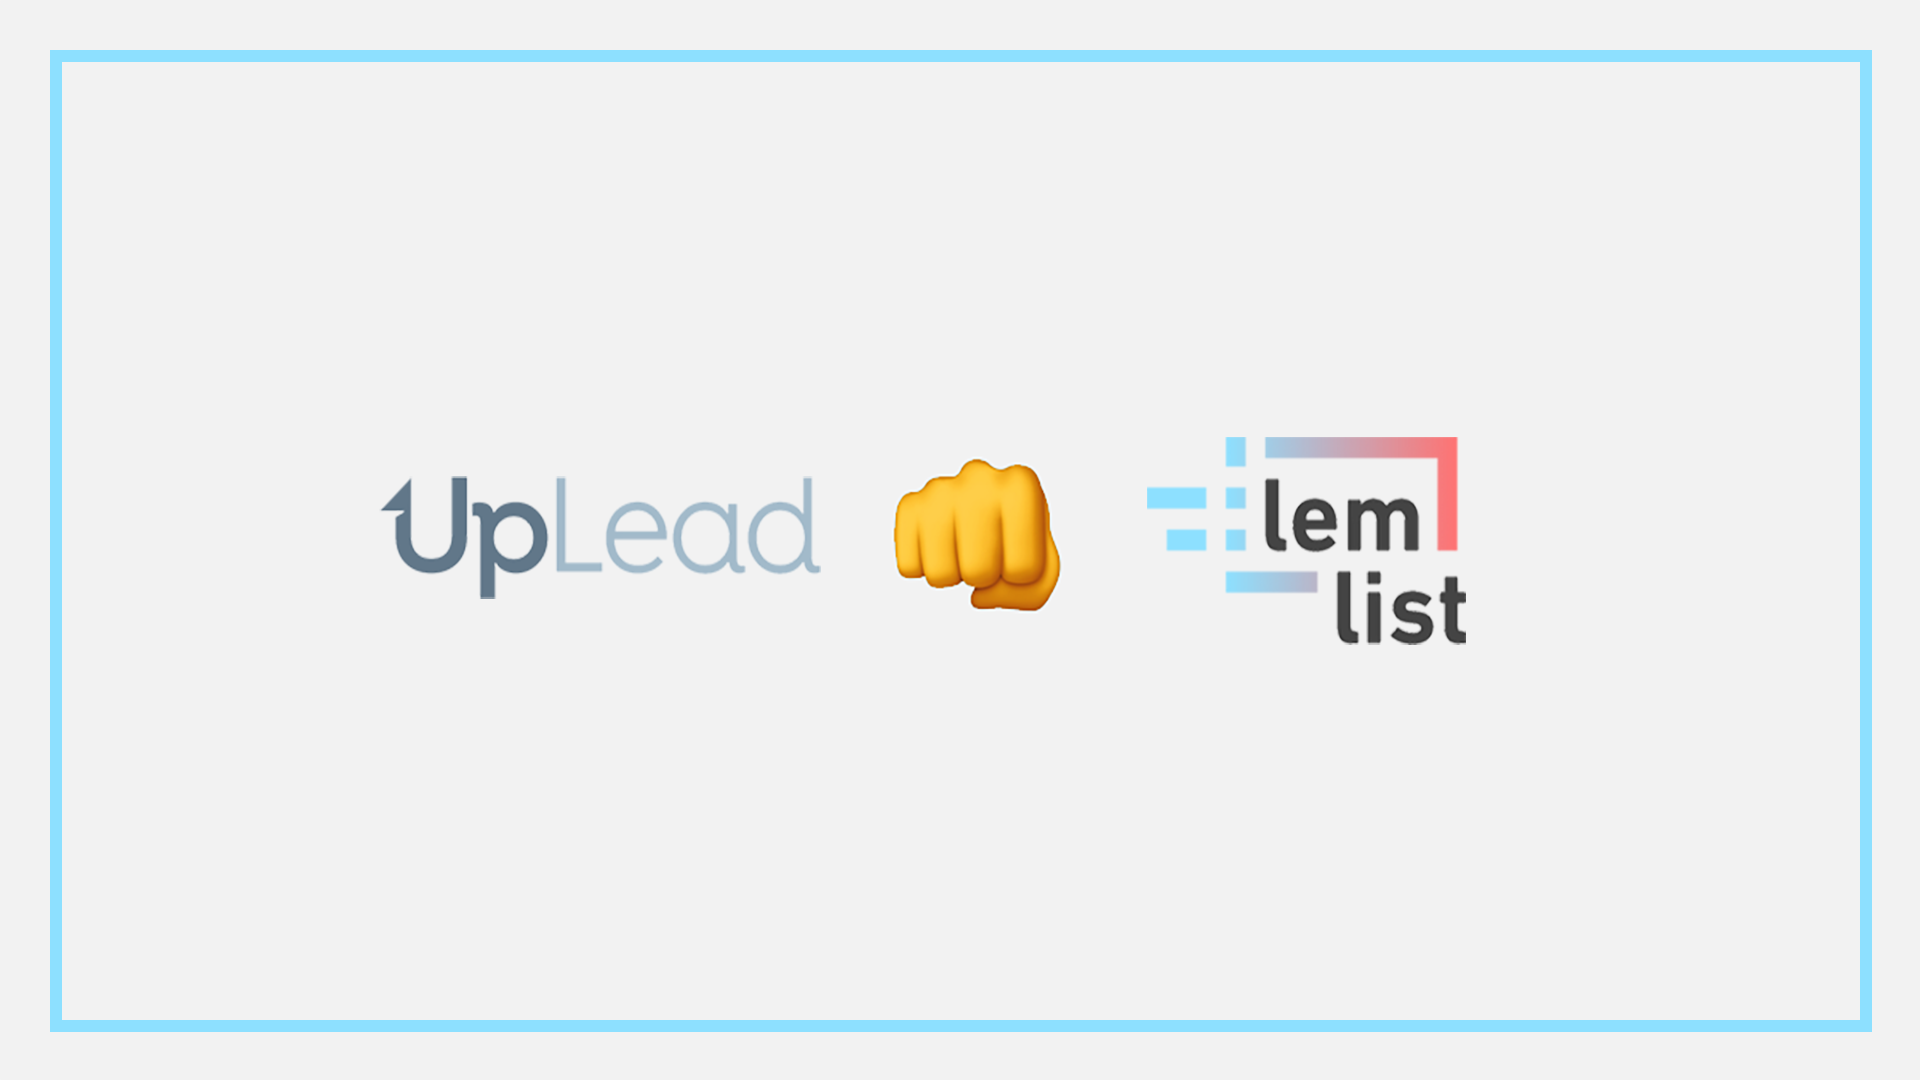 lemlist integration